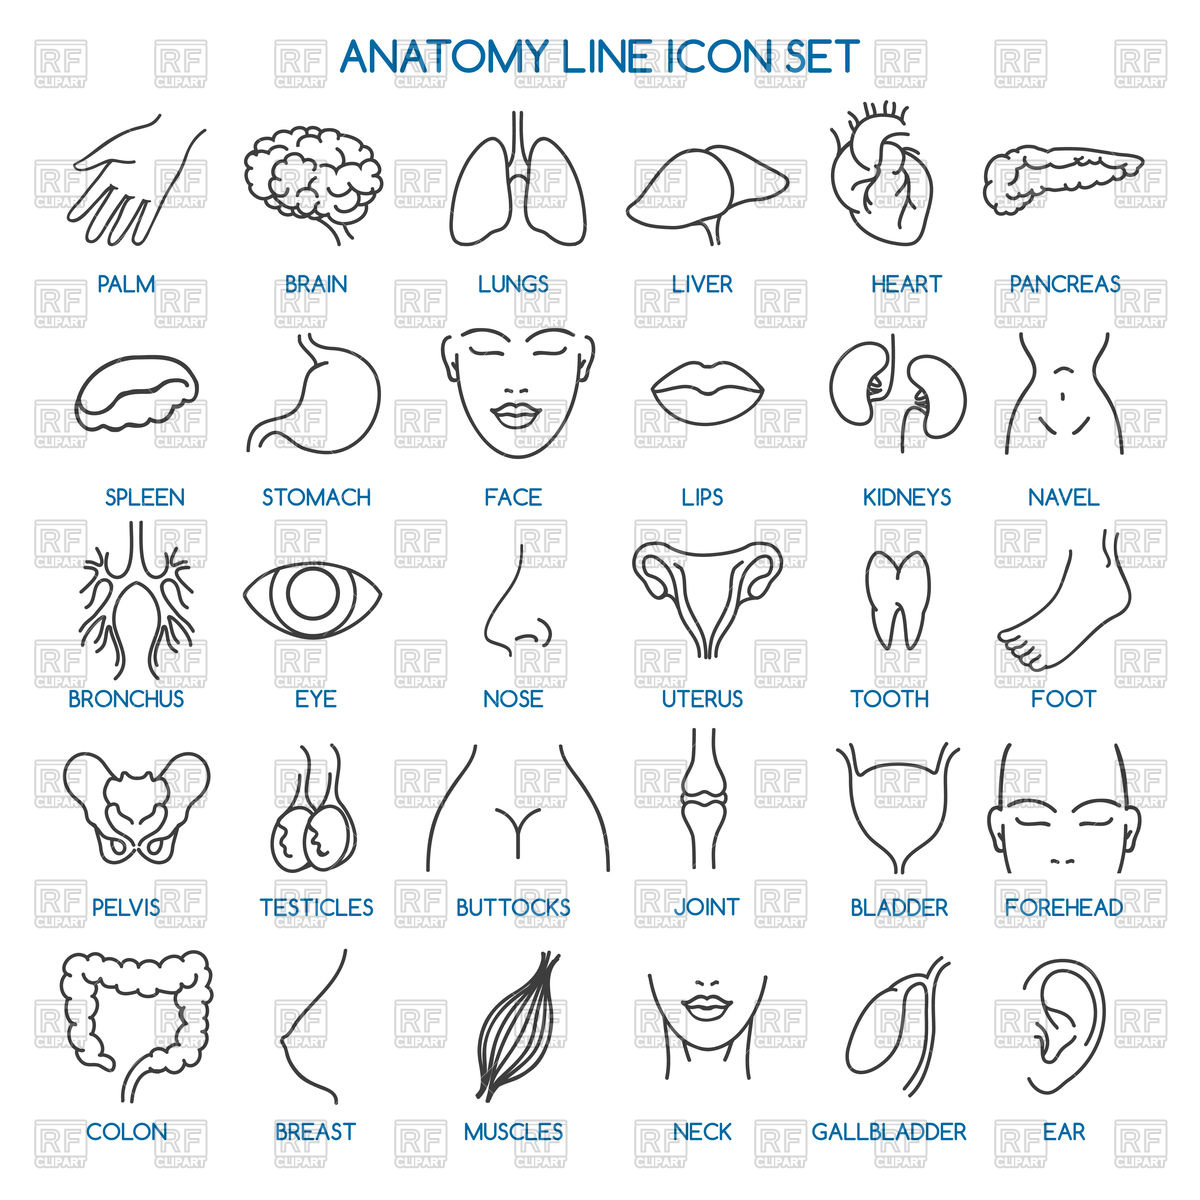 Anatomy line icons.